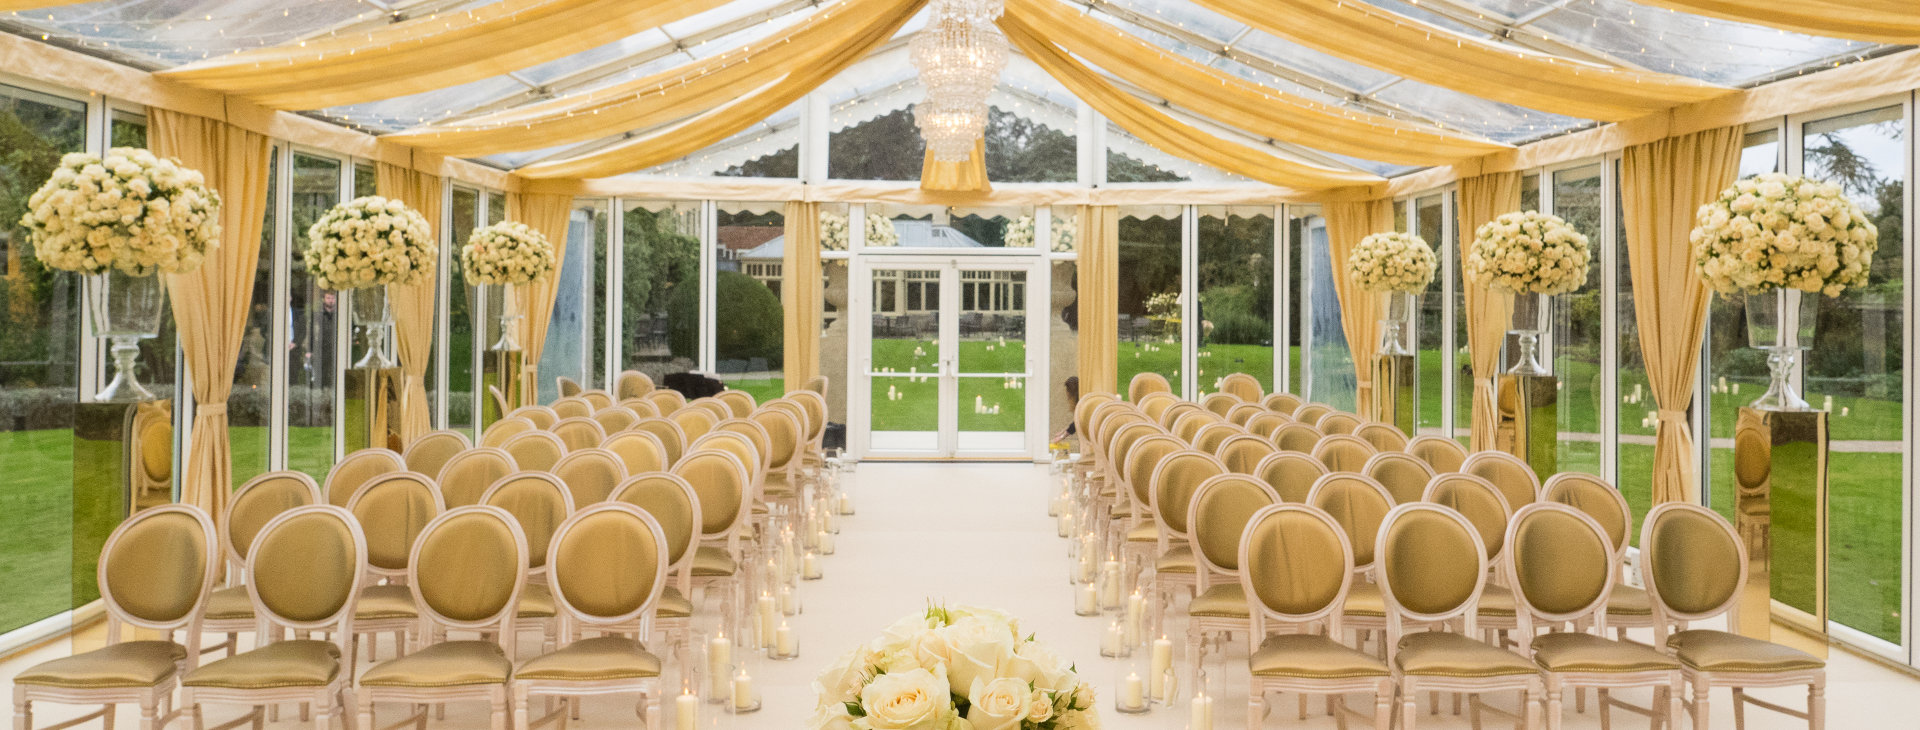 glass marquee for wedding at Le Manoir Aux Quat' Saisons